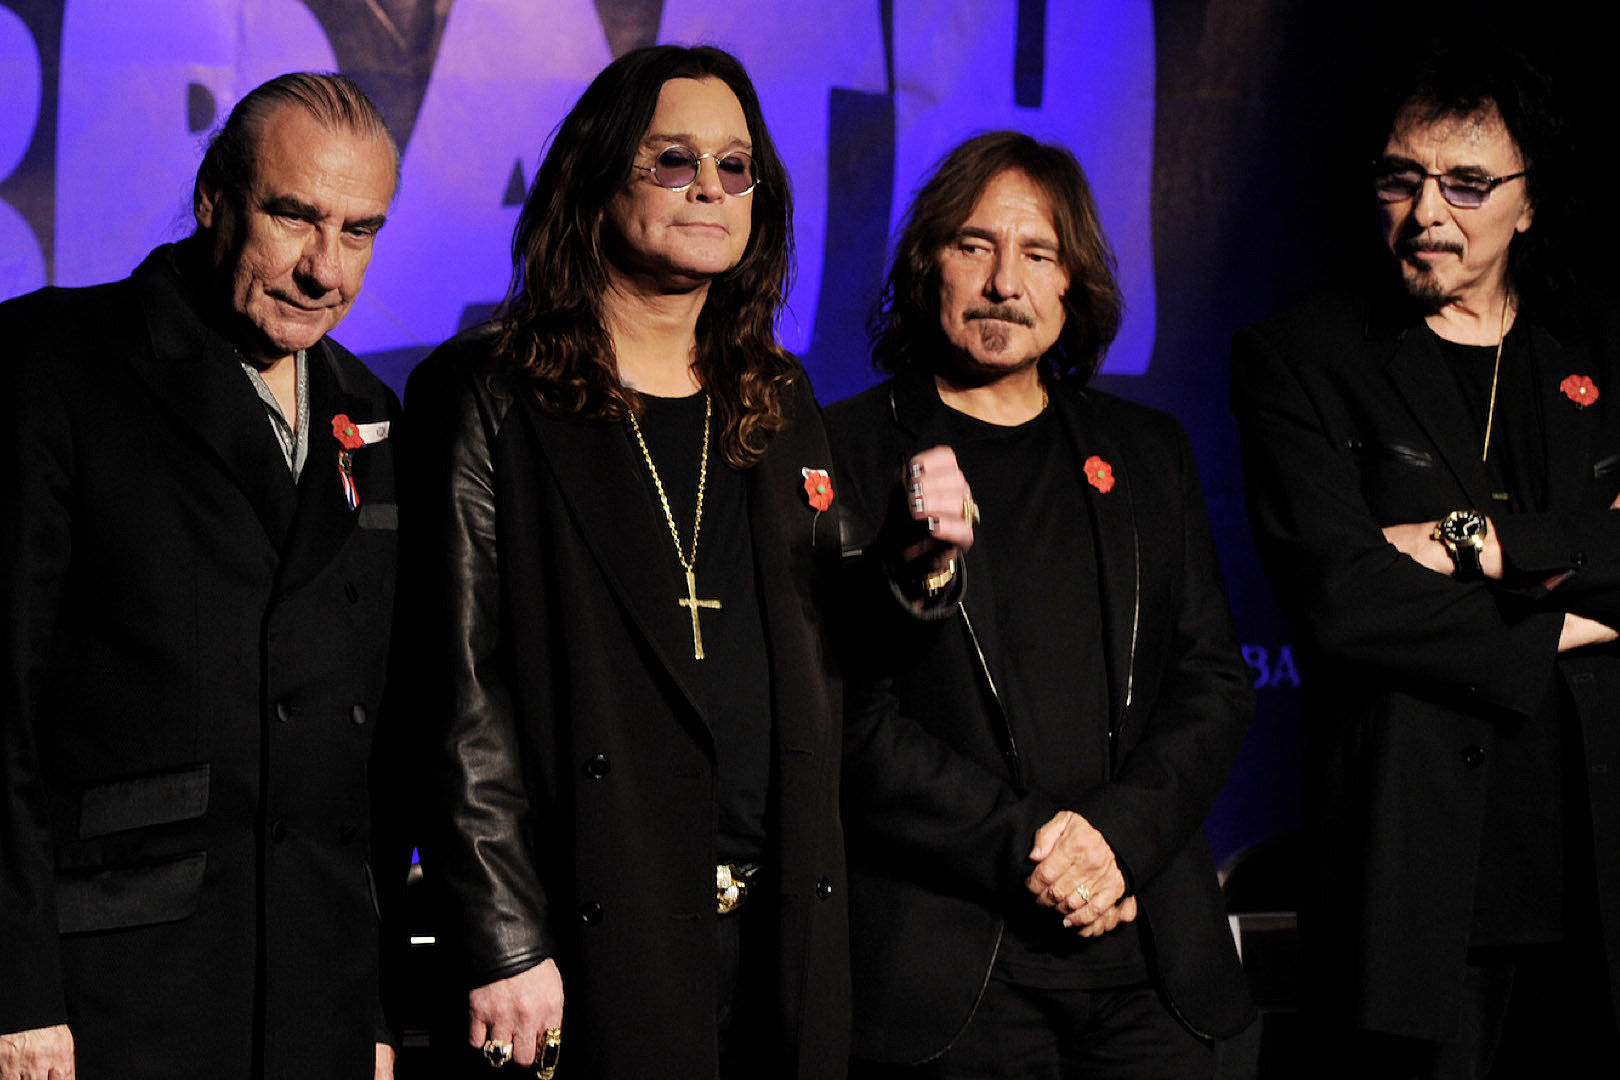 20 Facts You Probably Didn't Know About Black Sabbath